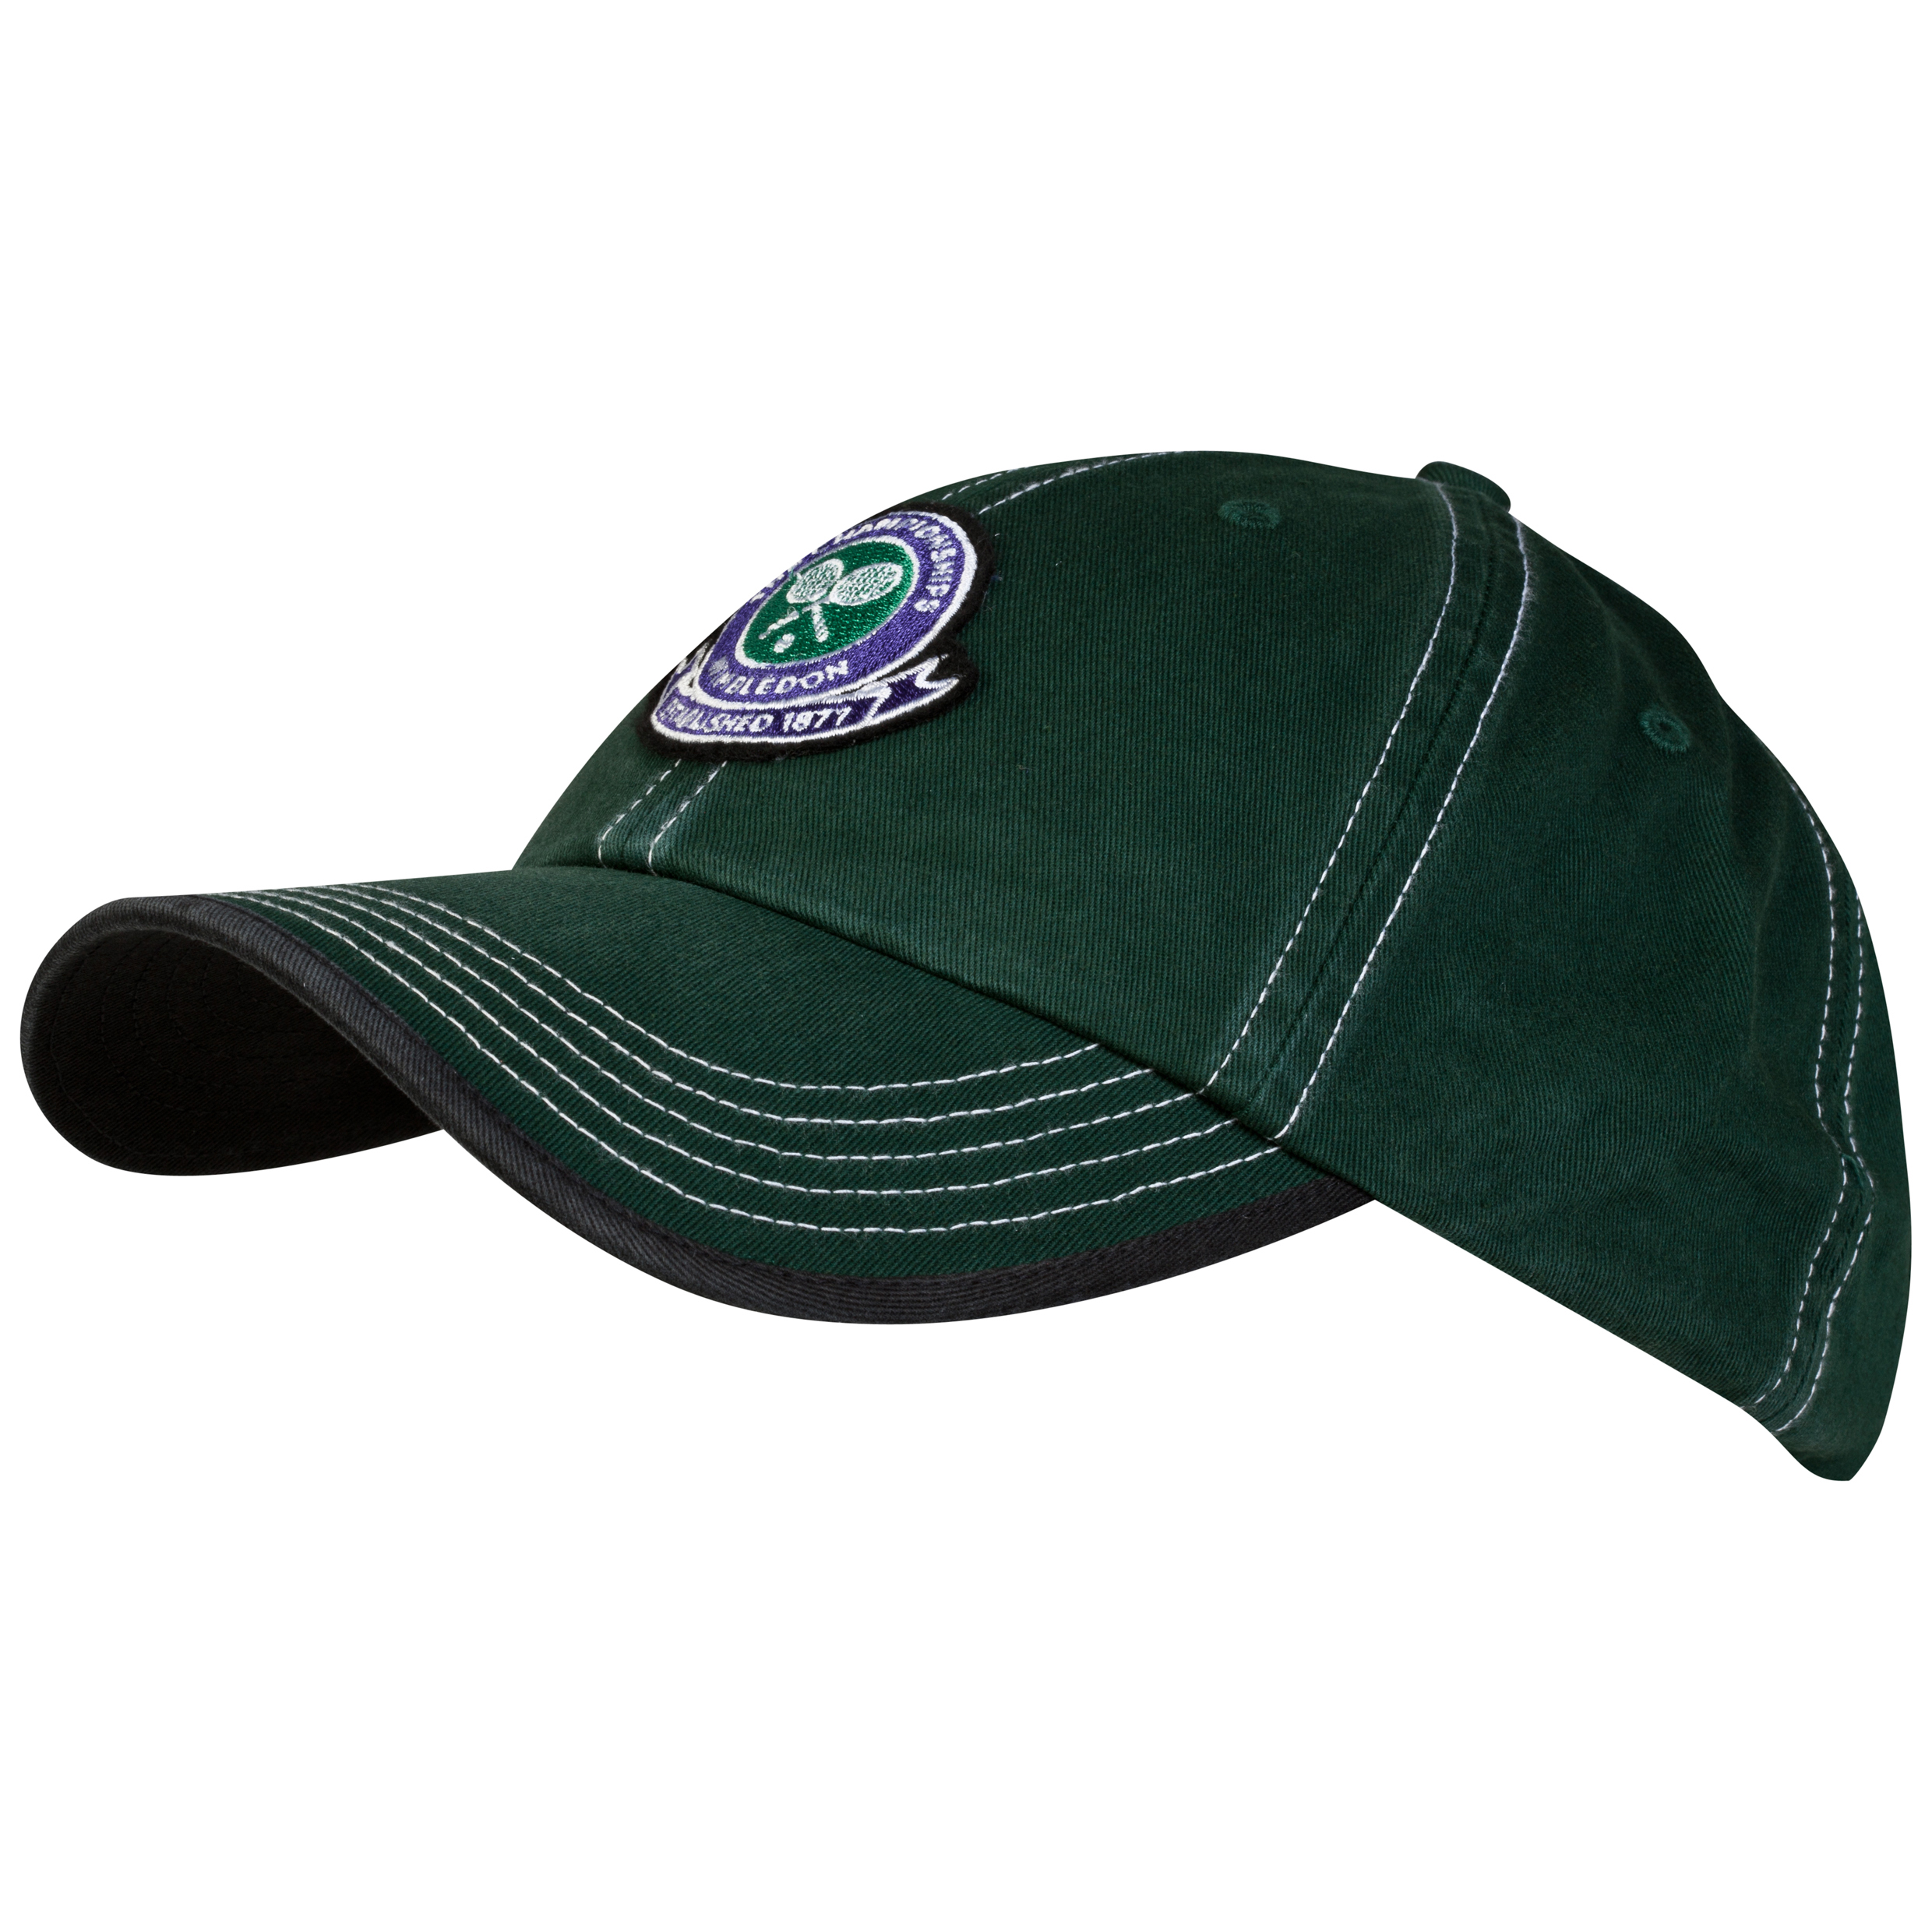 Wimbledon Logo Embroidered Cap - Dark Green